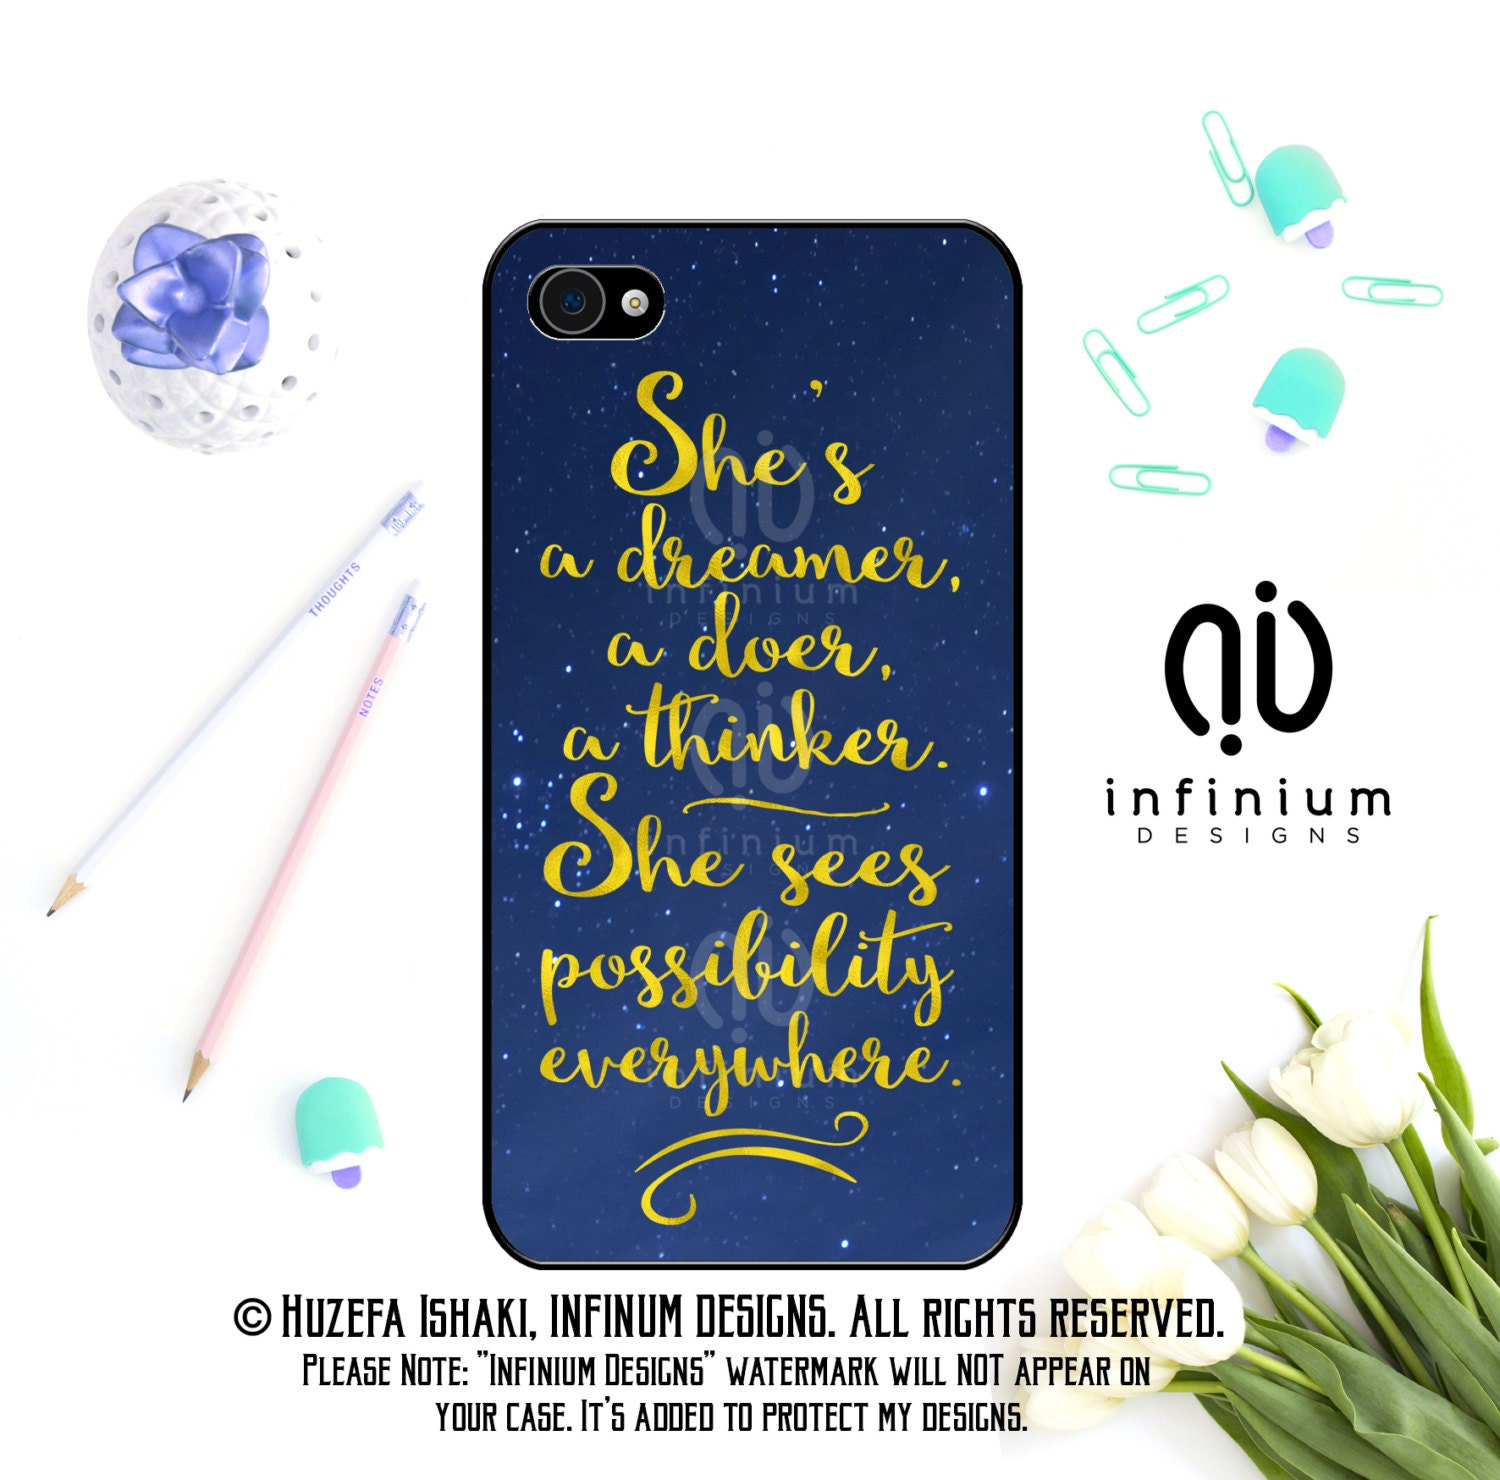 Shes A Dreamer A Doer Case For iPhone 6S iPhone SE iPhone 5 iPod Touch 6 iPhone 6 PLus iPhone 6 iPhone 5S  iPhone 5C Case